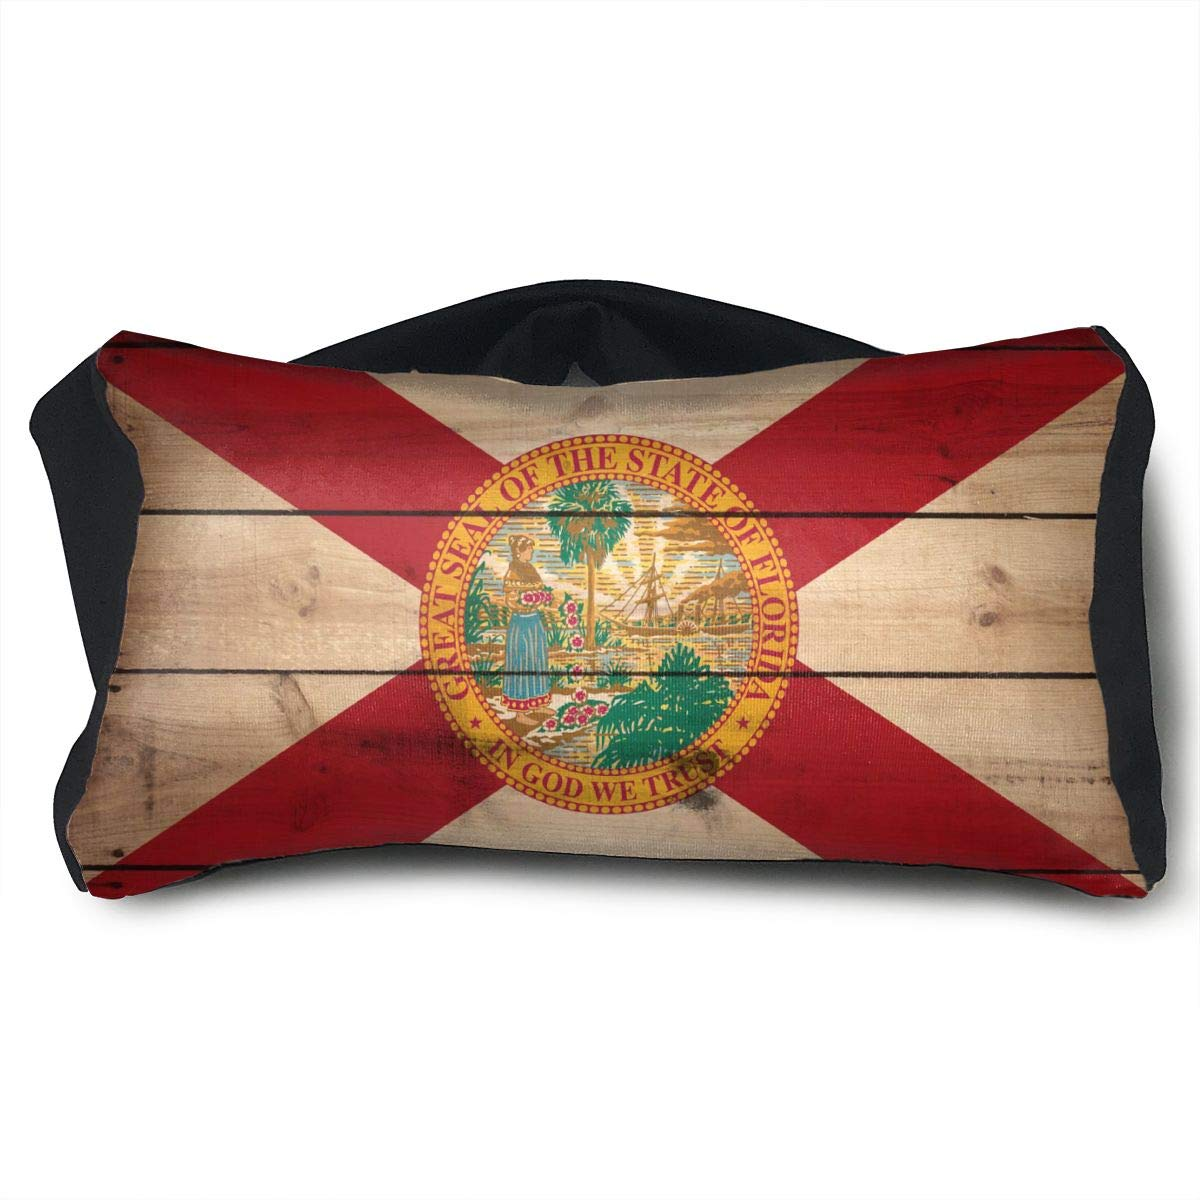 GLing-LIFE Florida State Flag Wood Texture Portable Voyage Pillow Travel Pillow and Eye Mask 2 in 1 Neck Head Support for Airplanes, Cars, Office Naps, Camping, Trains